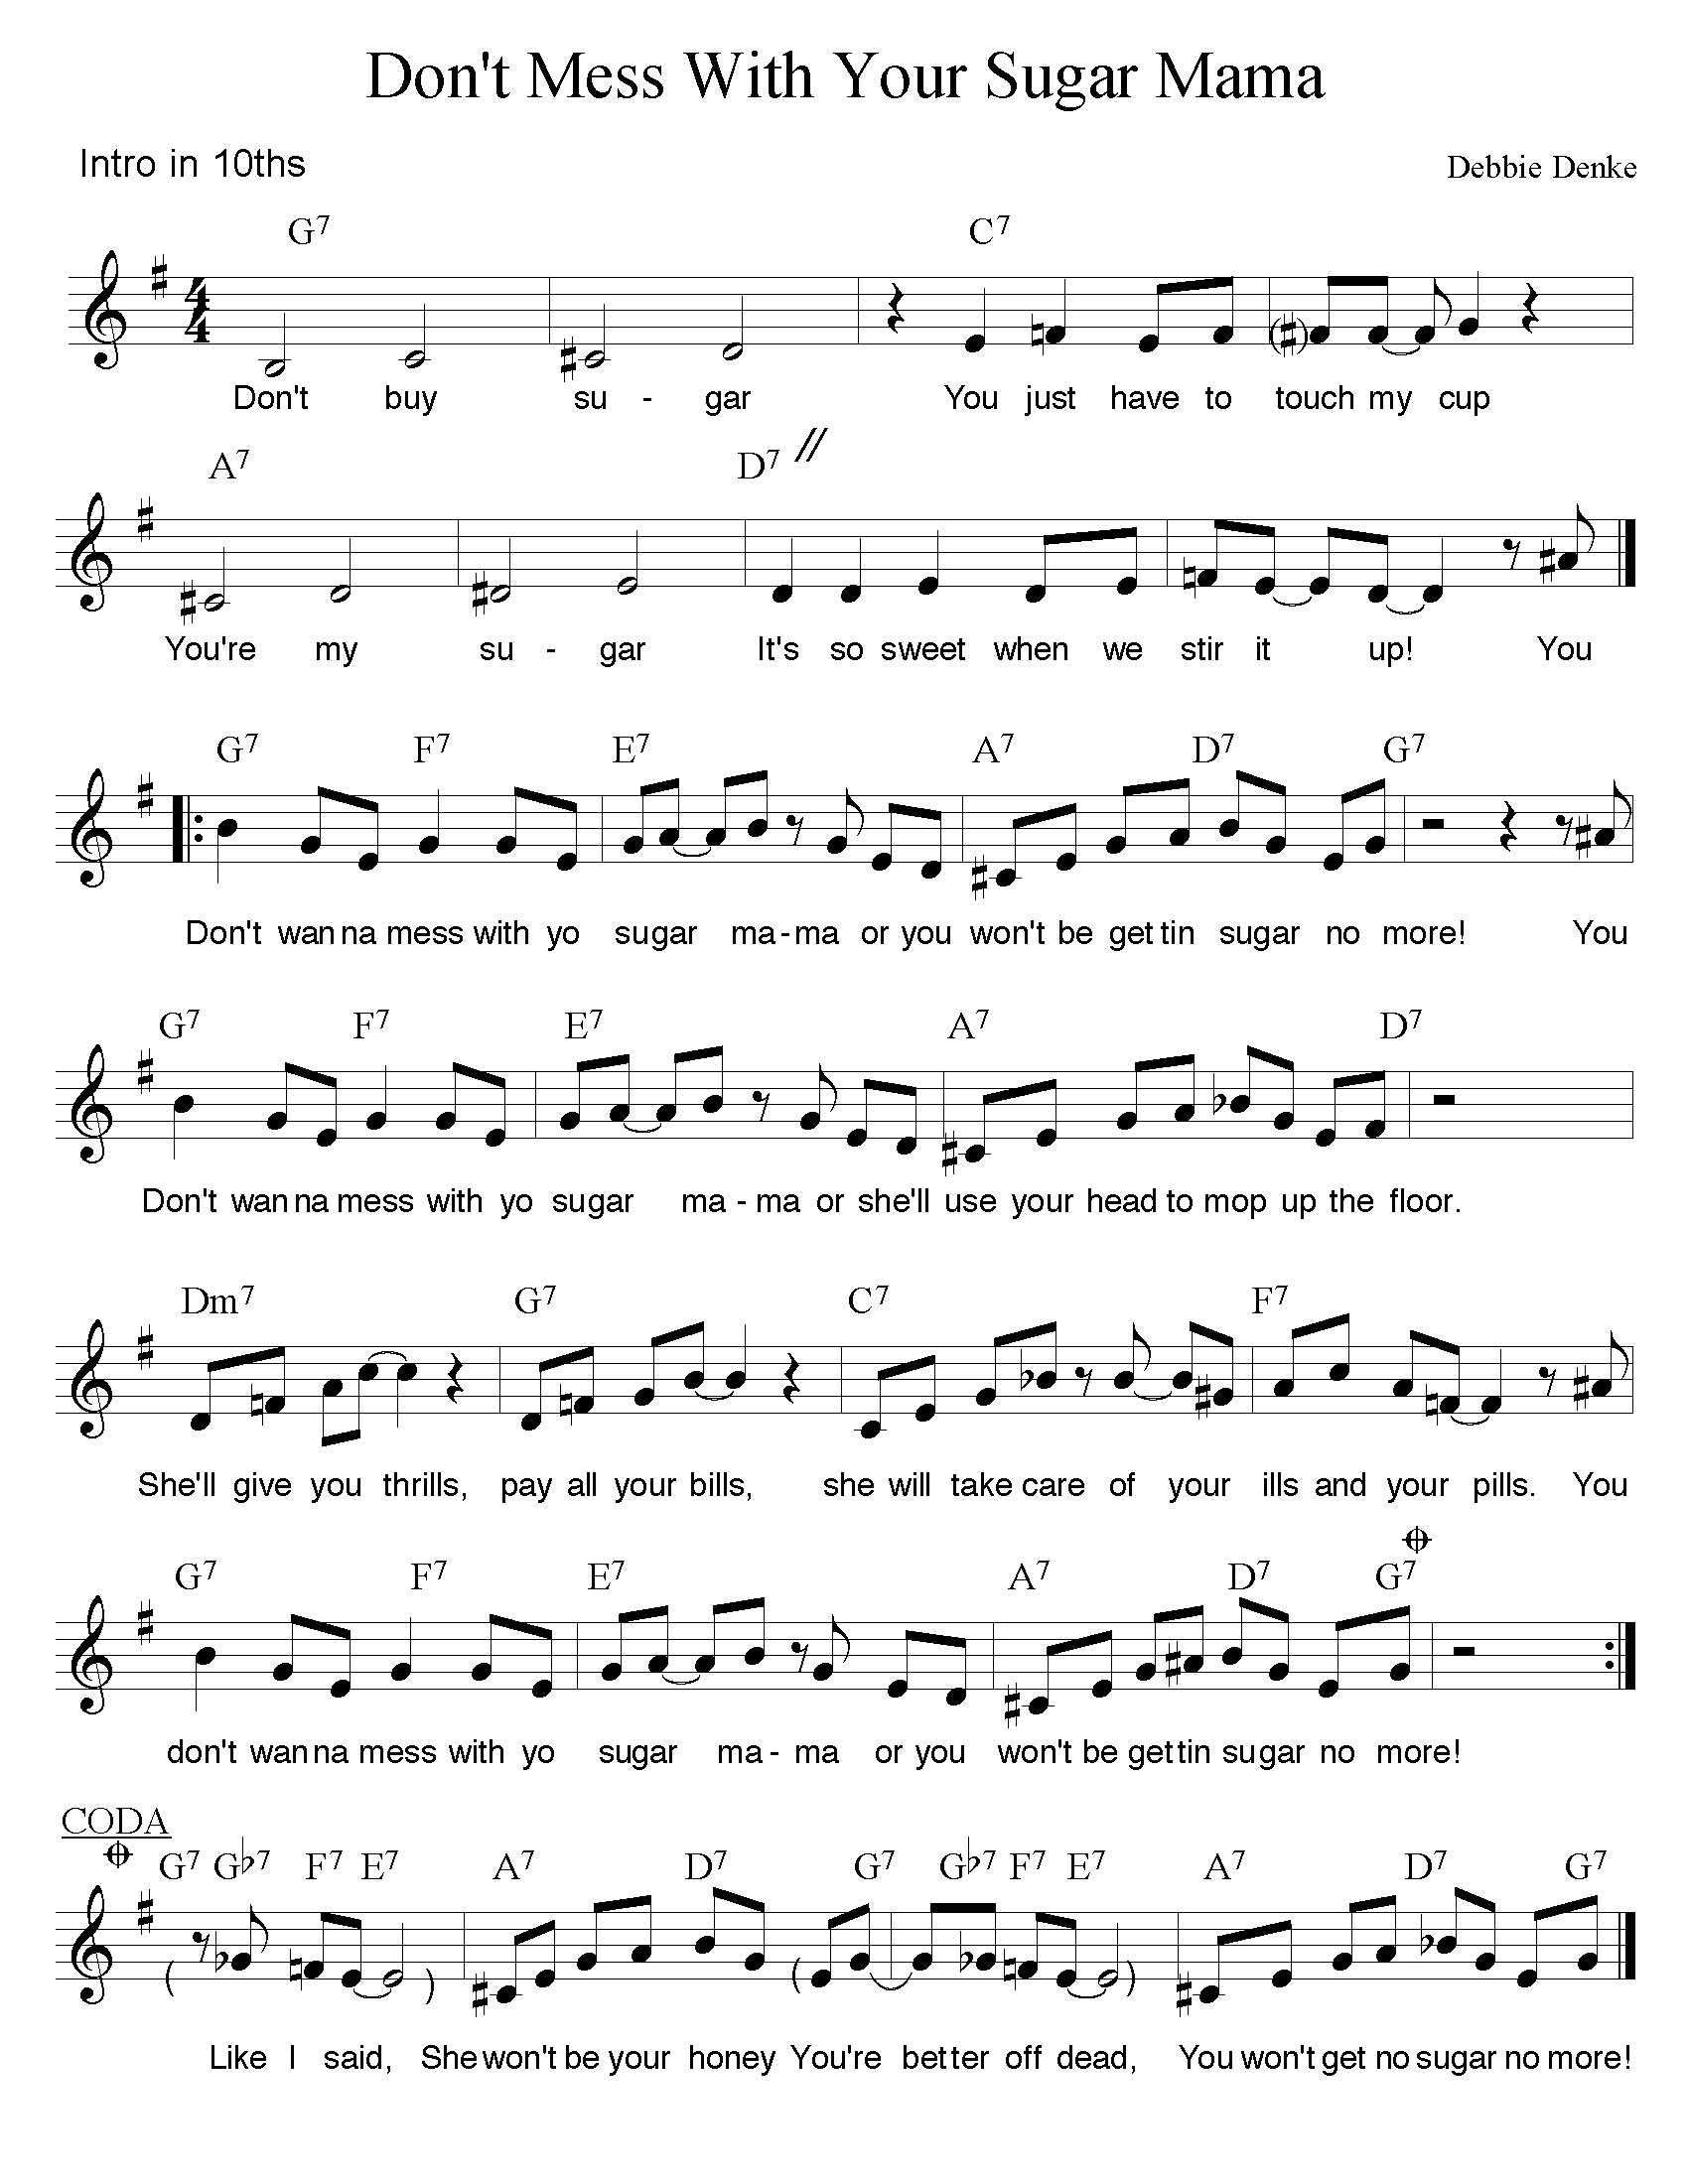 Do you hand out bad charts debbie denke music additionally when jazz musicians can see the melody with chords it gives them an idea for appropriate substitute chords that wont clash with the vocal hexwebz Images